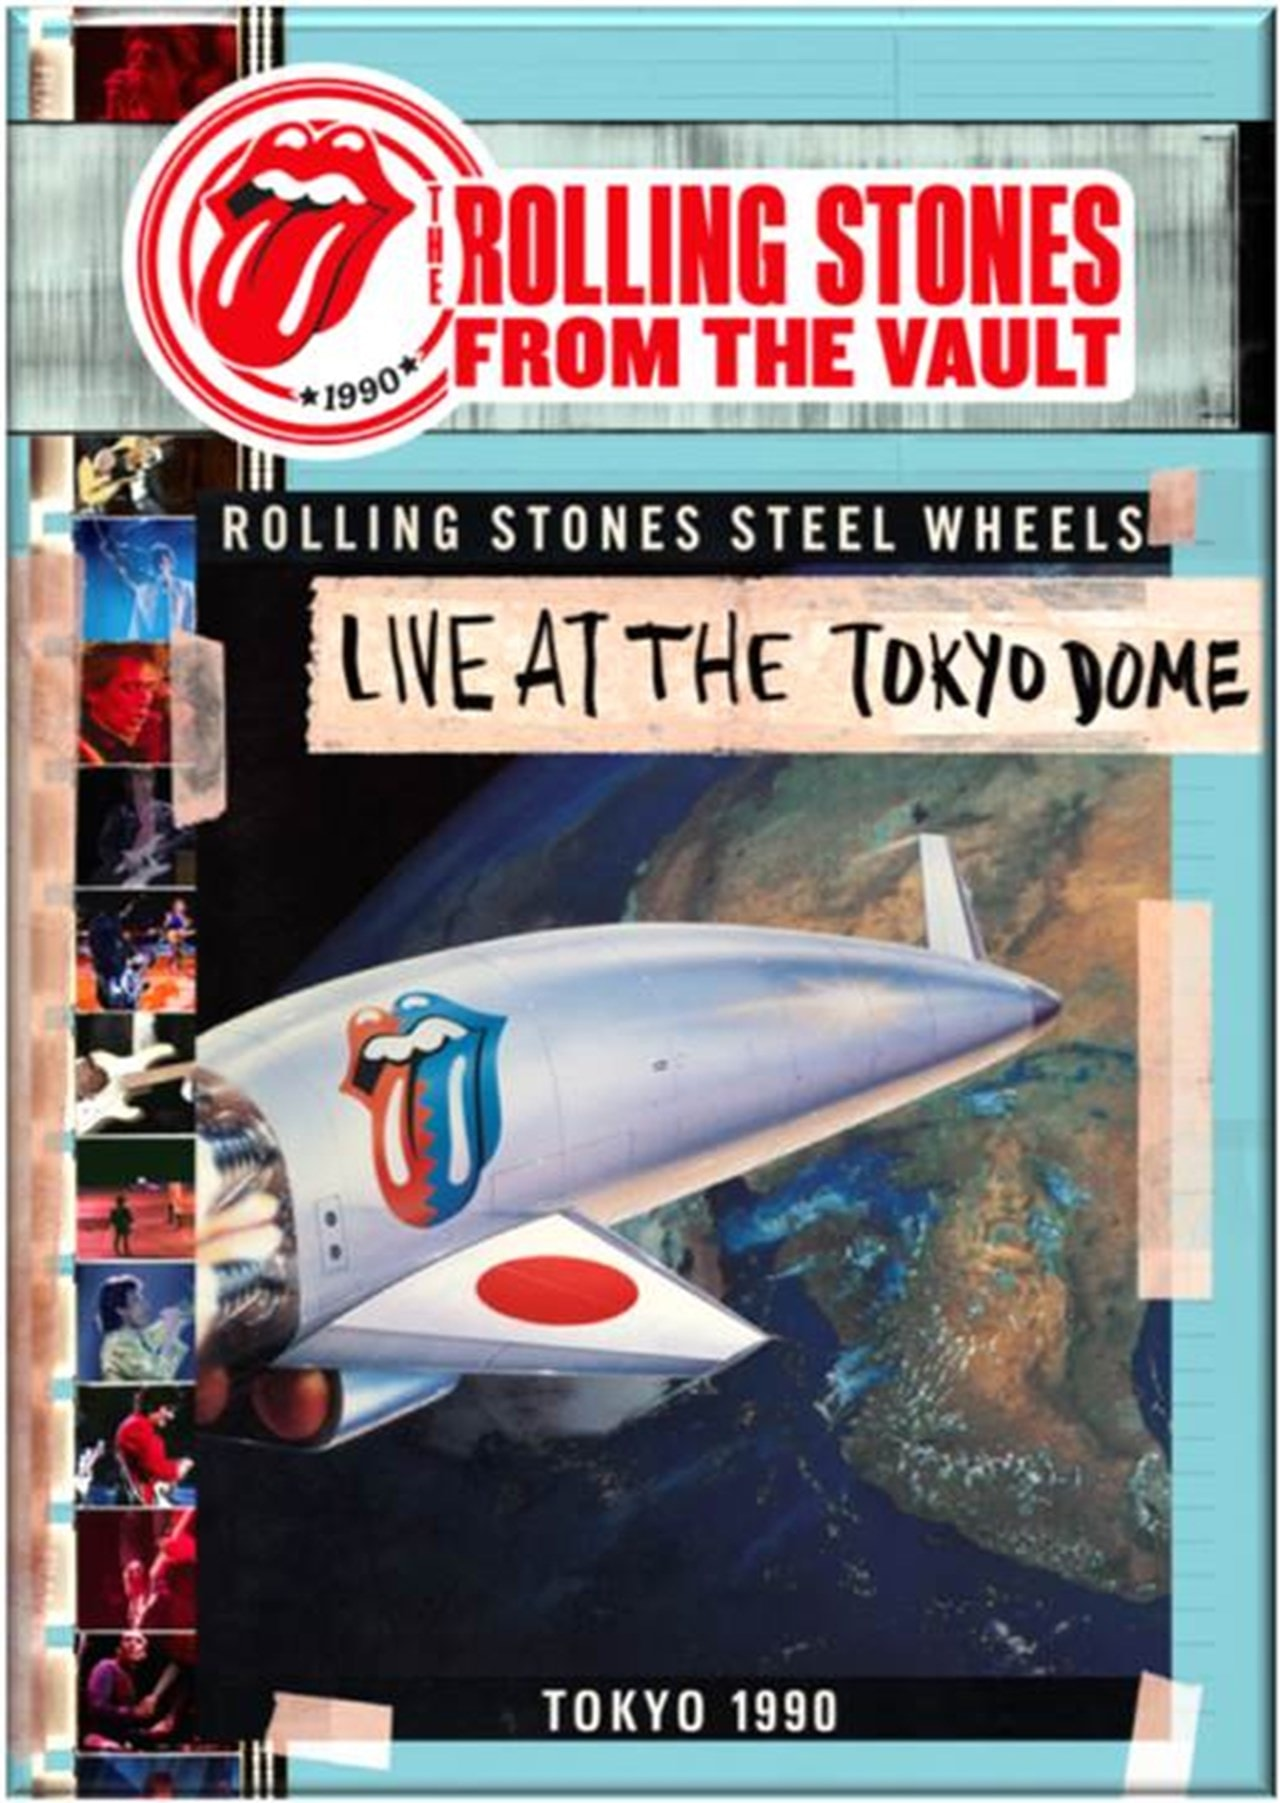 The Rolling Stones: From the Vault - 1990 - 1